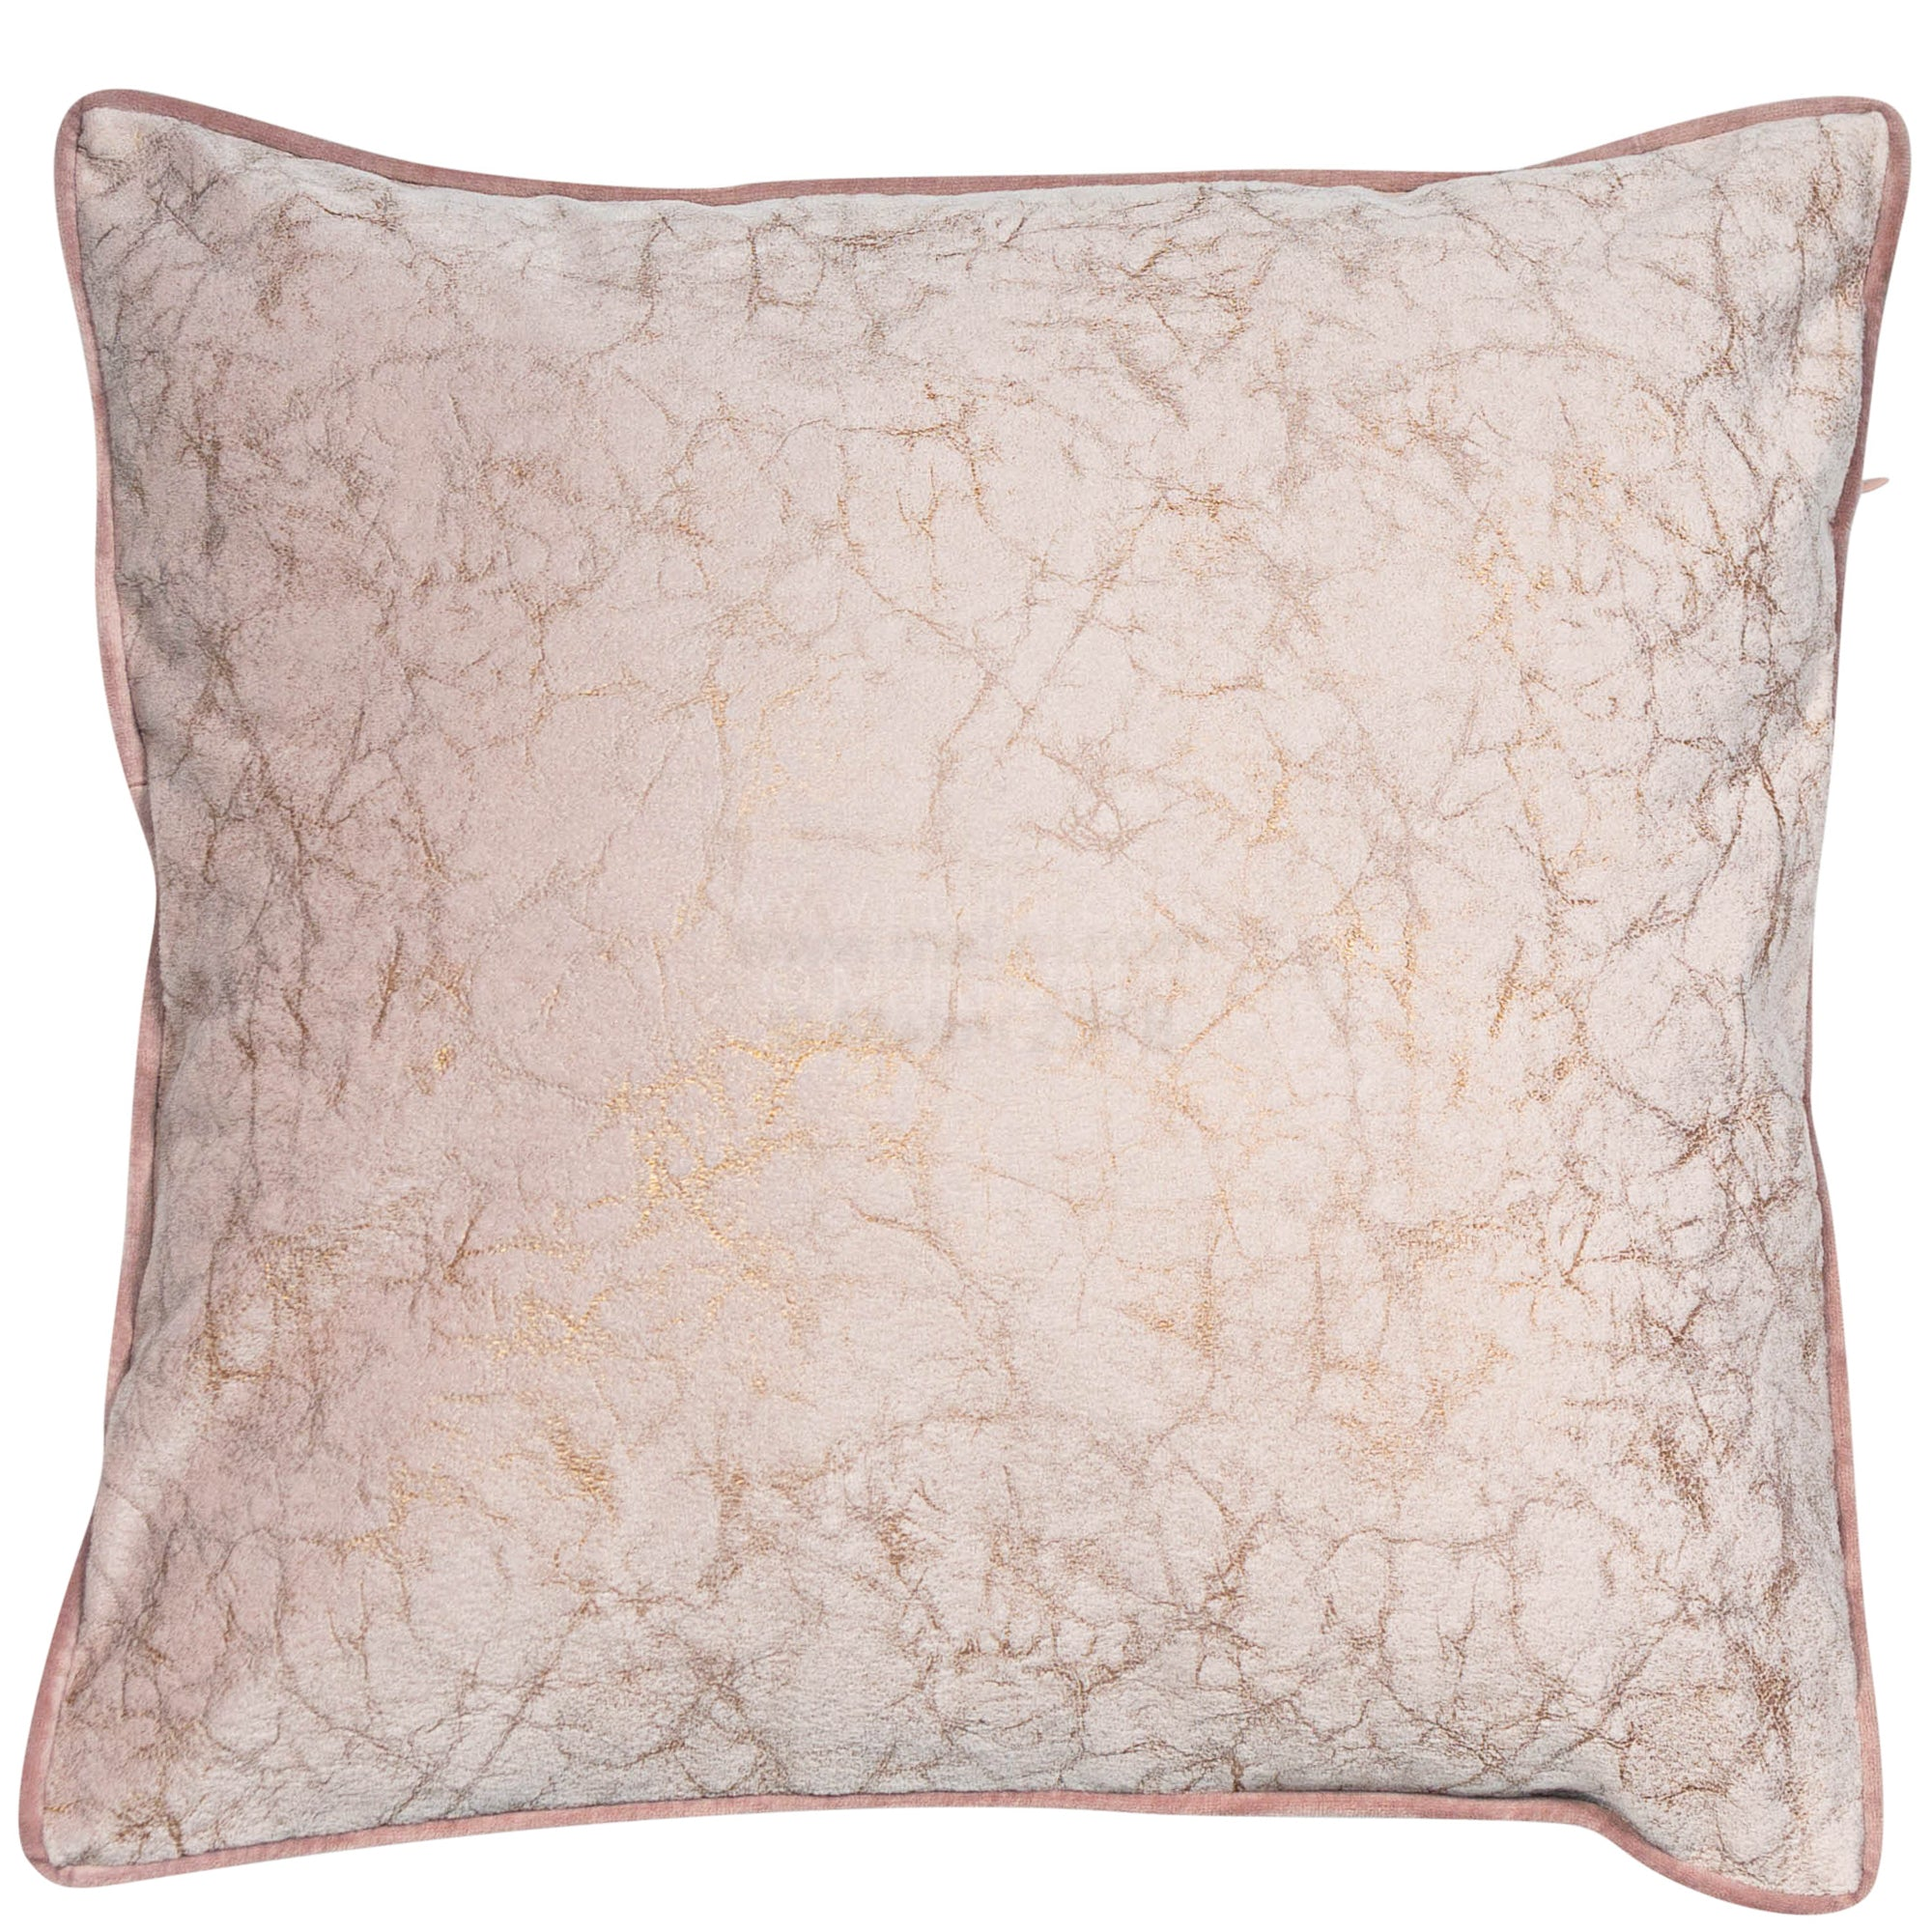 Malini Crackle Blush Pink Cushion